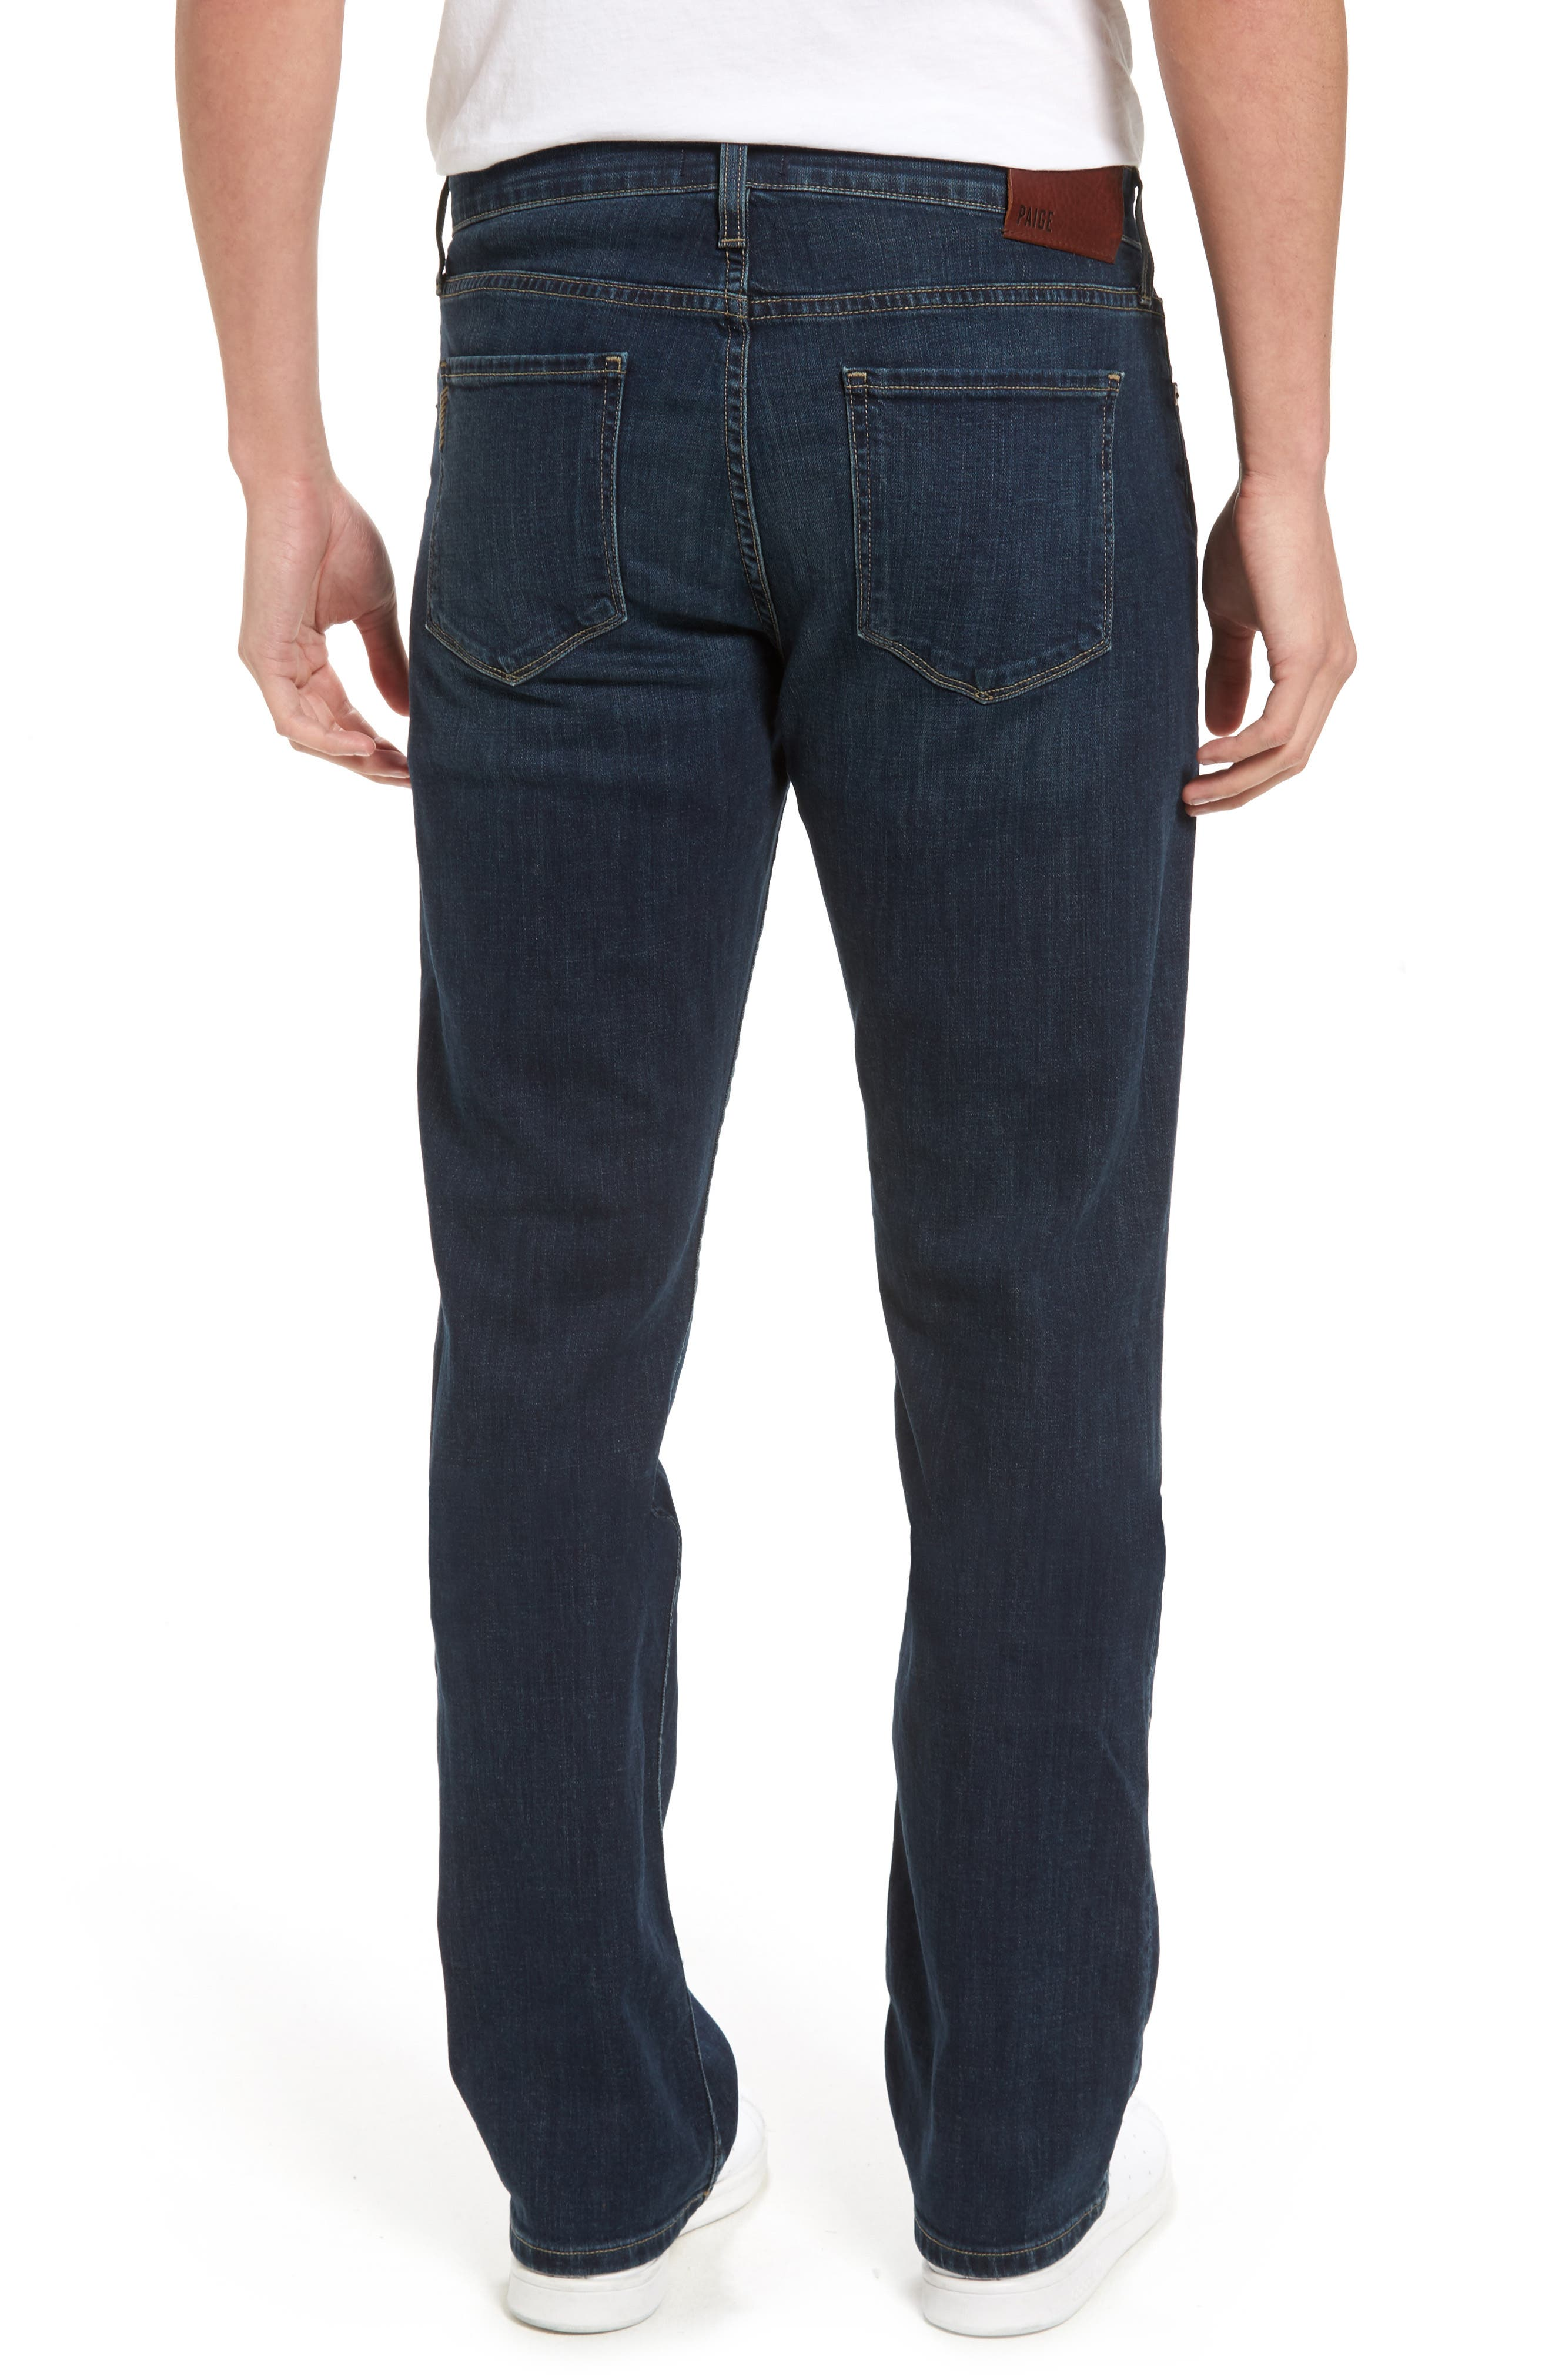 Doheny Relaxed Fit Jeans,                             Alternate thumbnail 2, color,                             Knowle